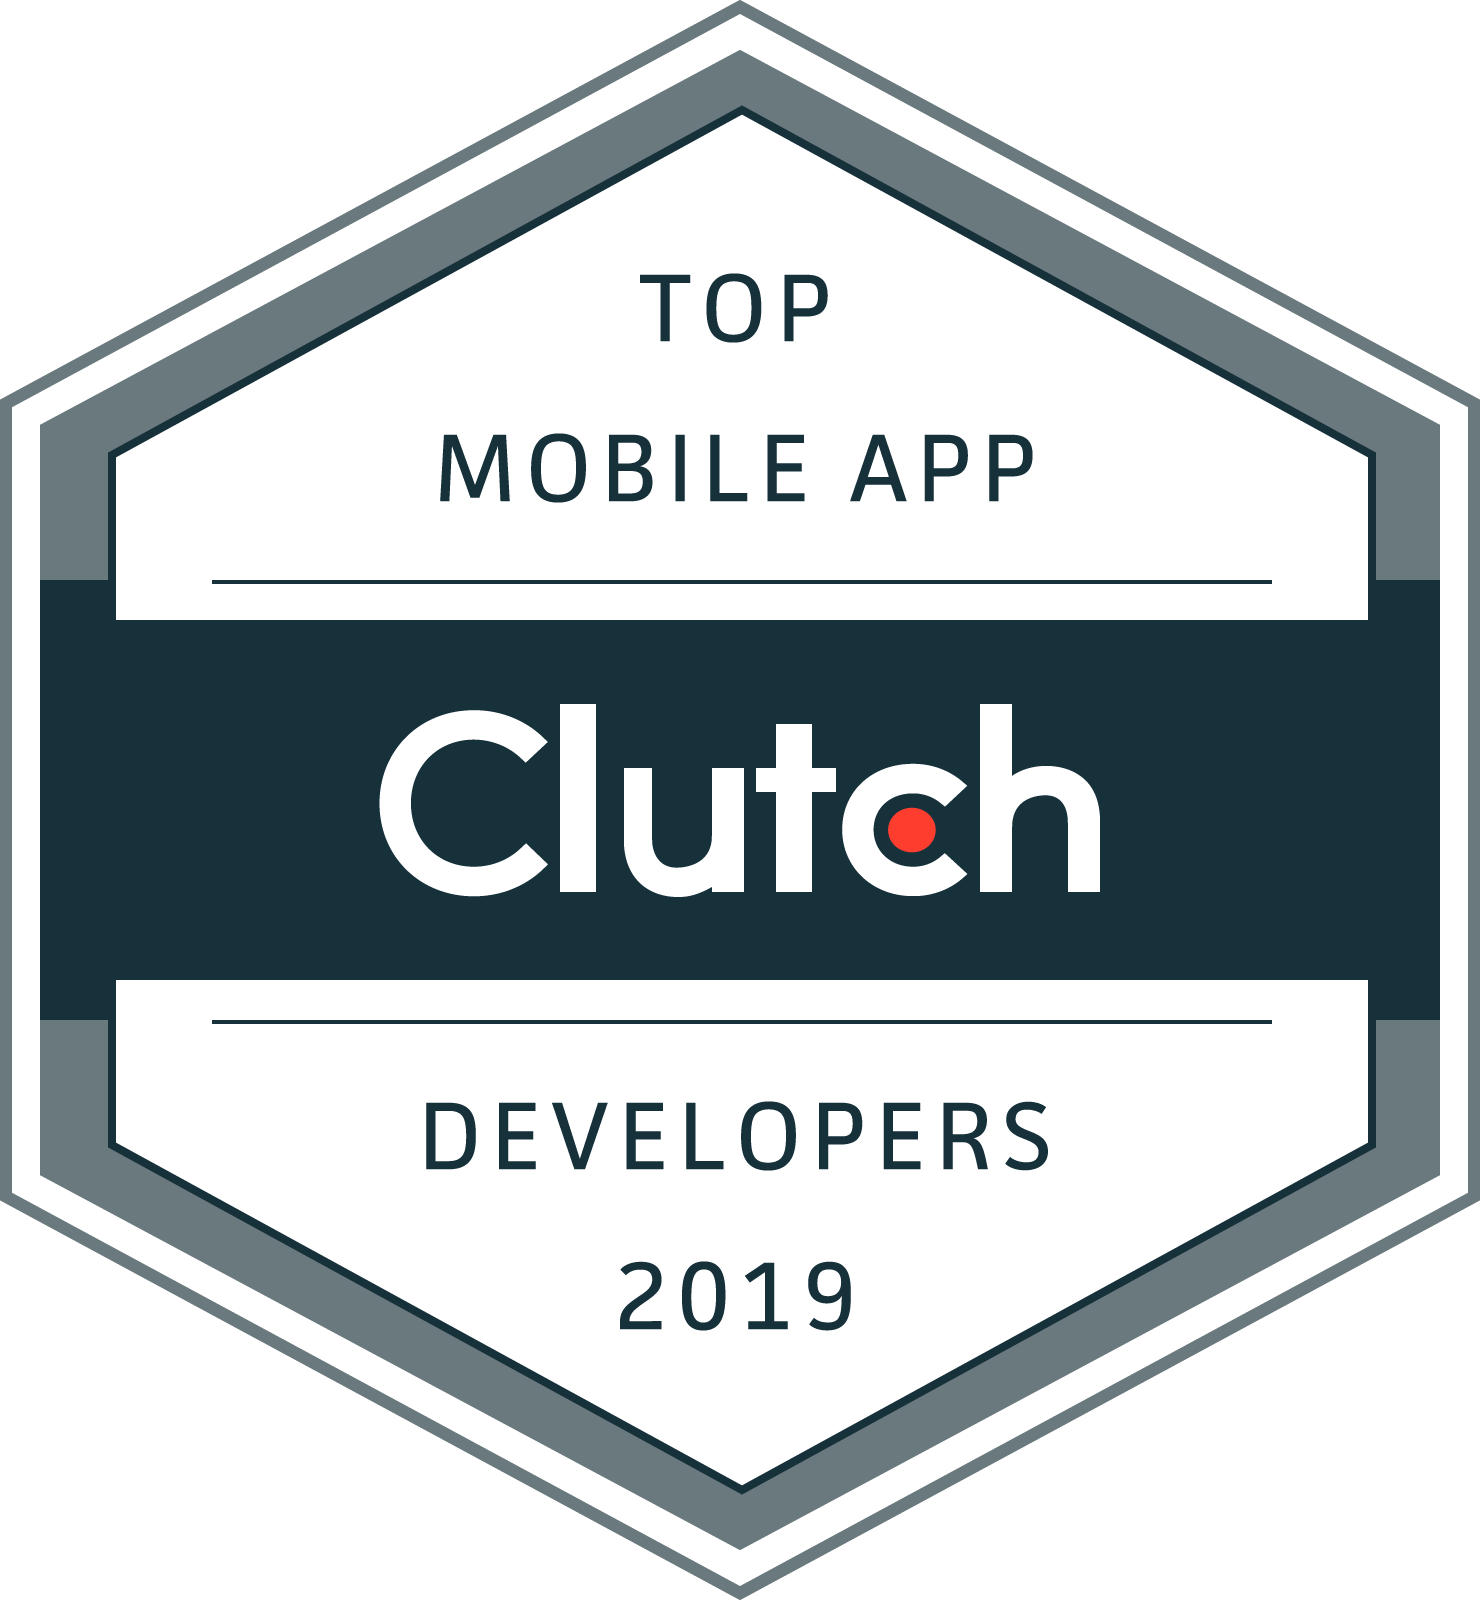 Top Mobile App Developers 2019